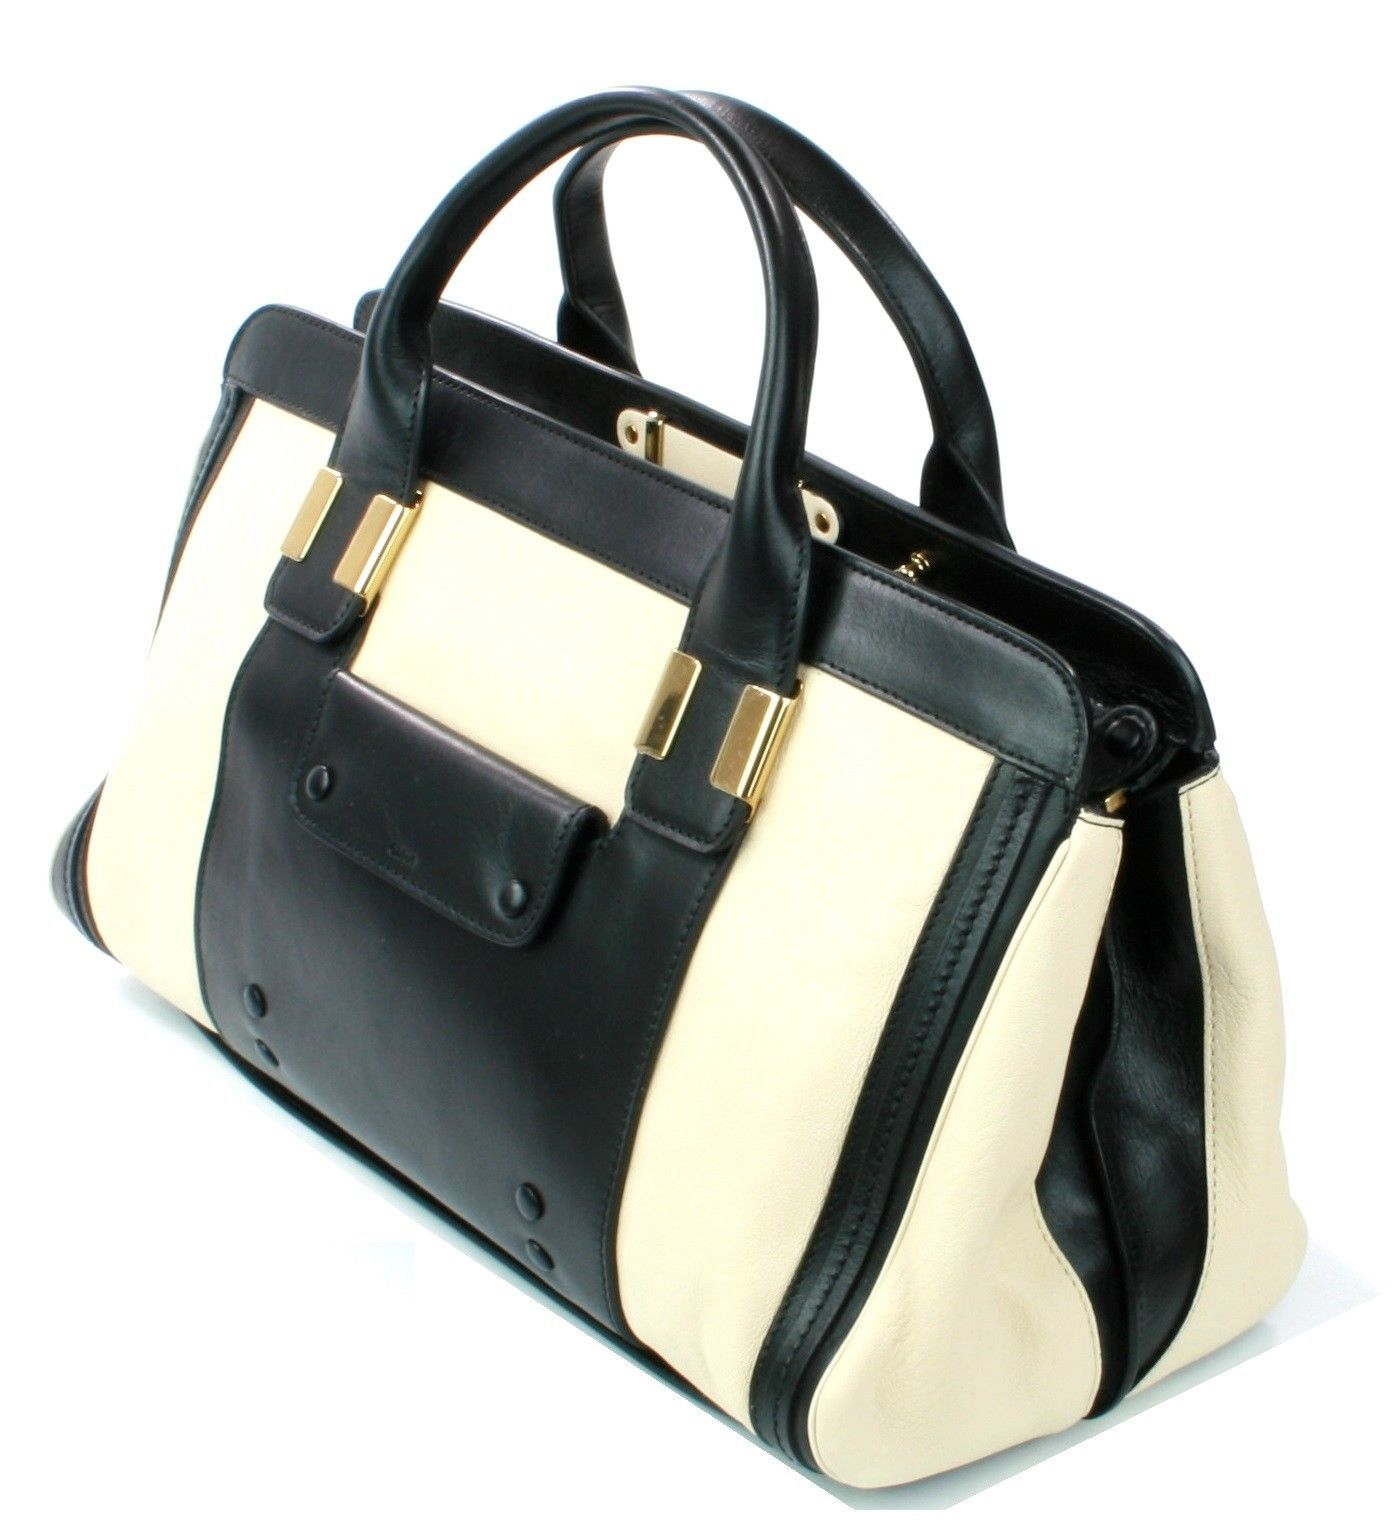 Chloe alice HUSKY blanches noires Sac fourre-tout cuir taille moyenne Sac à main